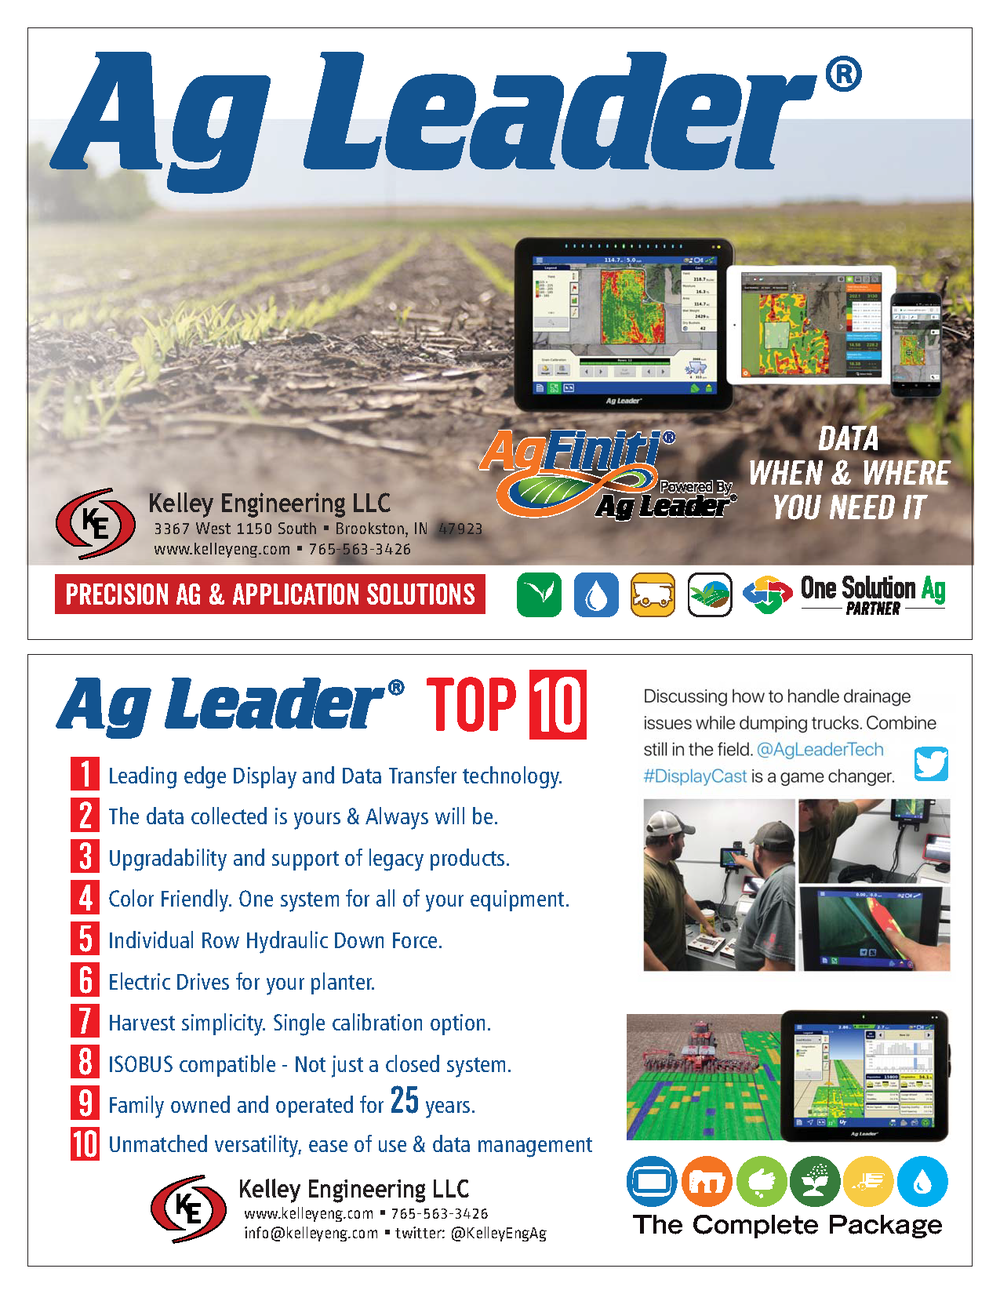 Ag Leader - Top 10